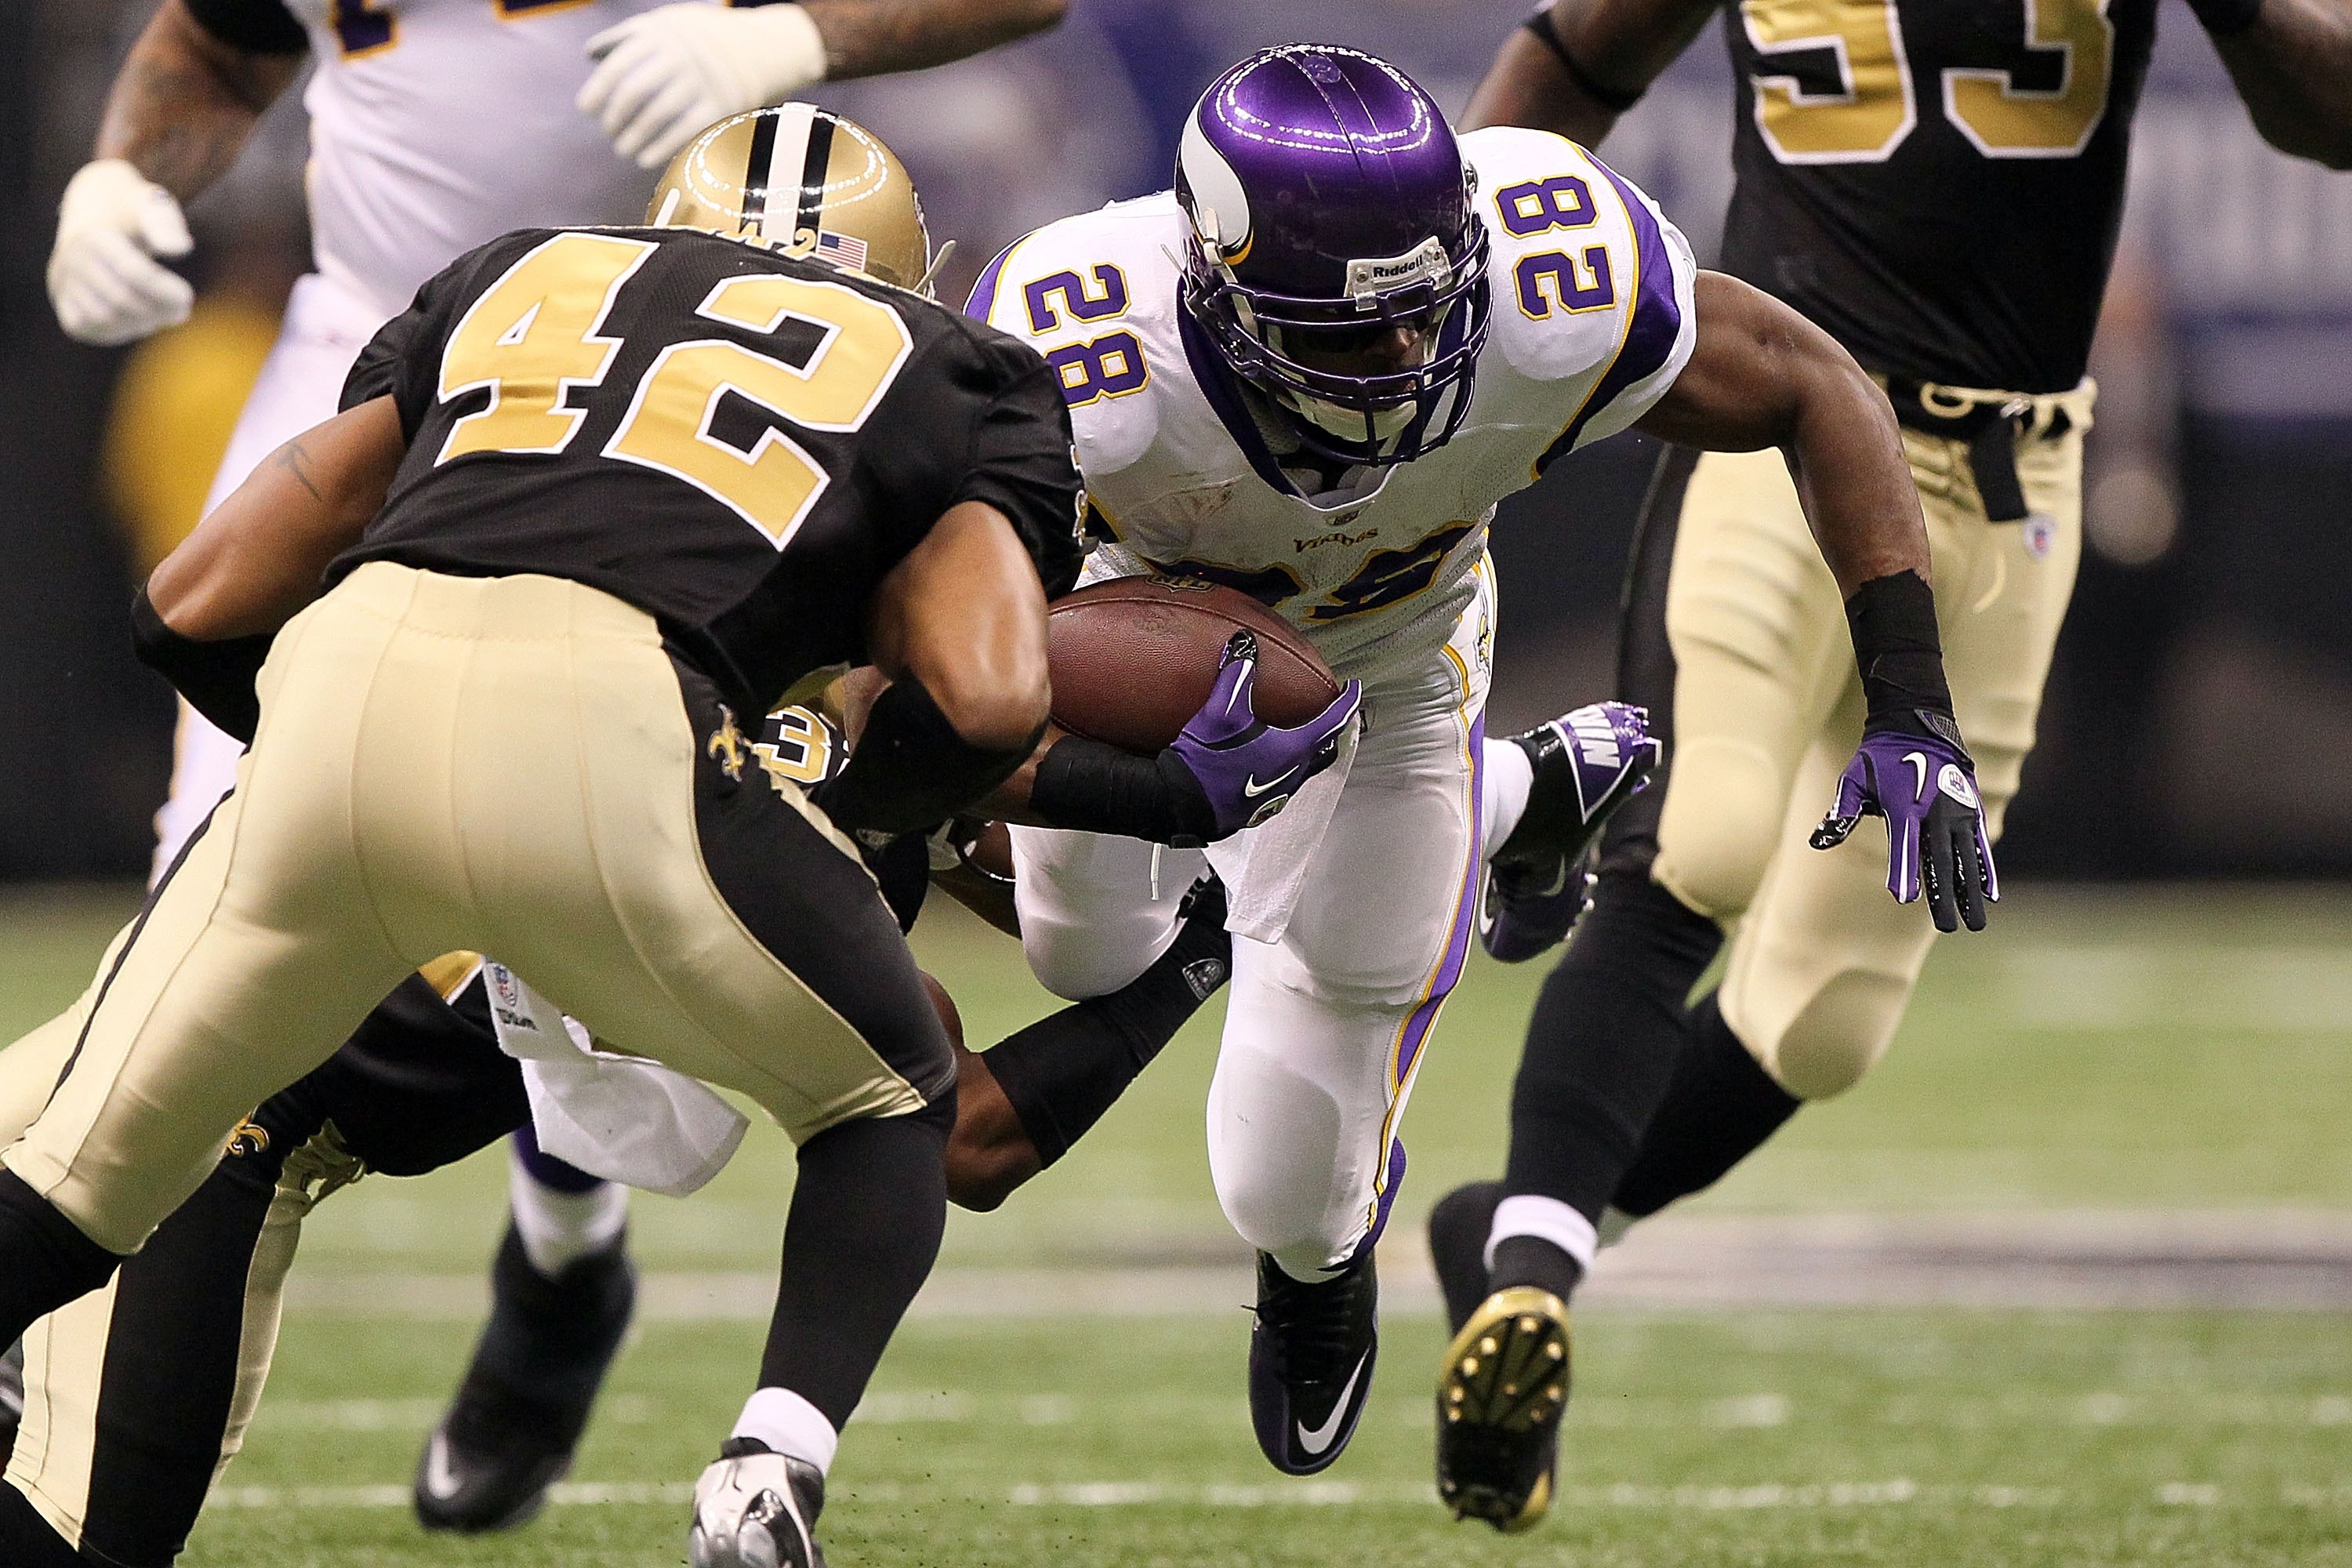 NEW ORLEANS - JANUARY 24:  Adrian Peterson #28 of the Minnesota Vikings runs the ball against the New Orleans Saints during the NFC Championship Game at the Louisiana Superdome on January 24, 2010 in New Orleans, Louisiana.  (Photo by Jed Jacobsohn/Getty